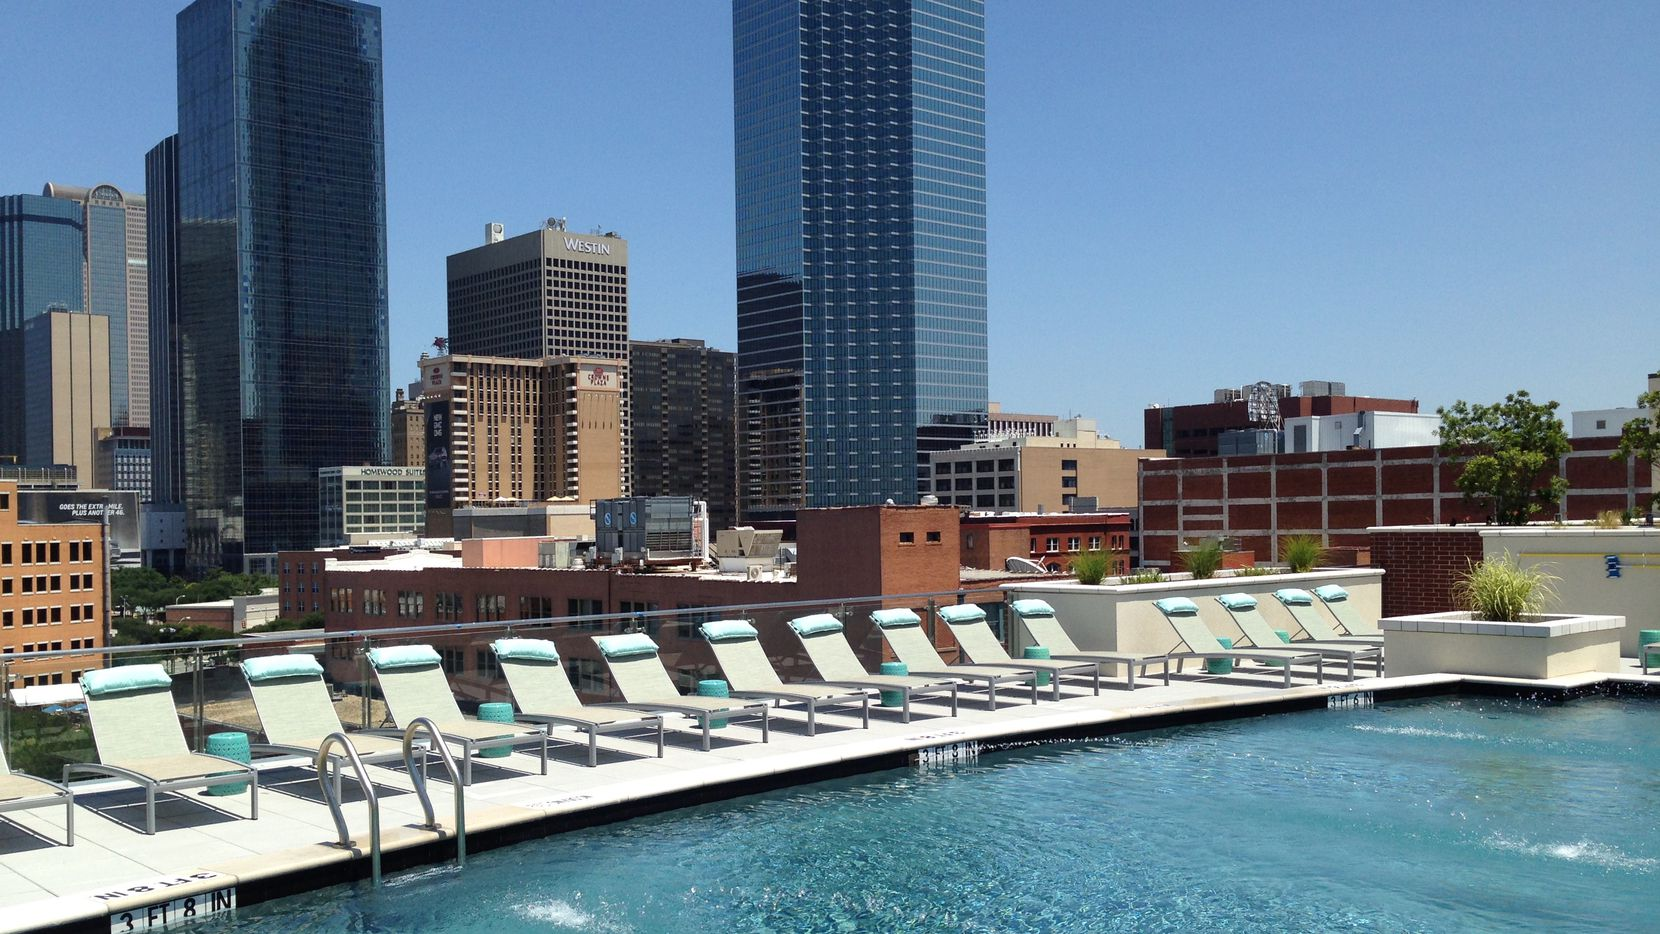 Rooftop pools with skyline views are standard for the newest Dallas apartment projects.